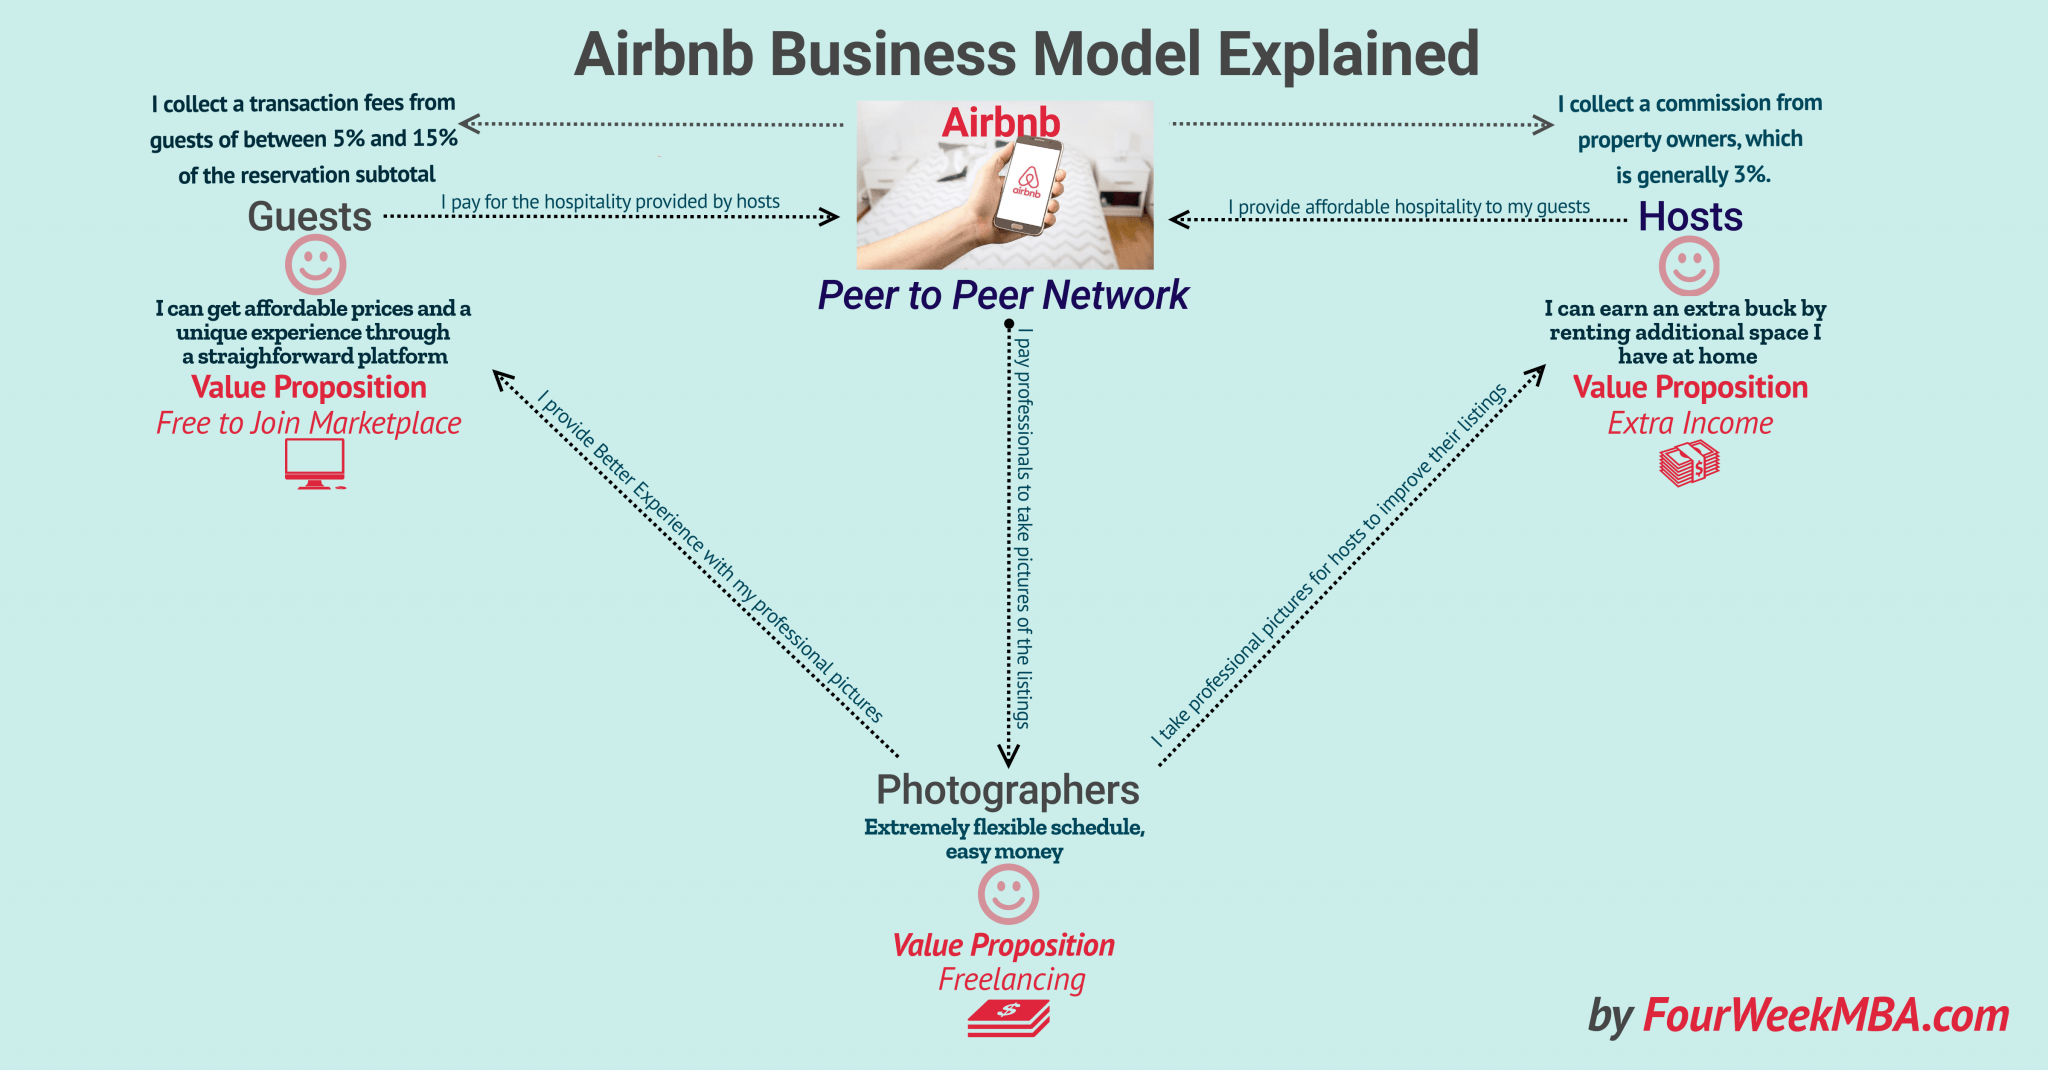 How Does Airbnb Make Money? Airbnb Peer To Peer Business